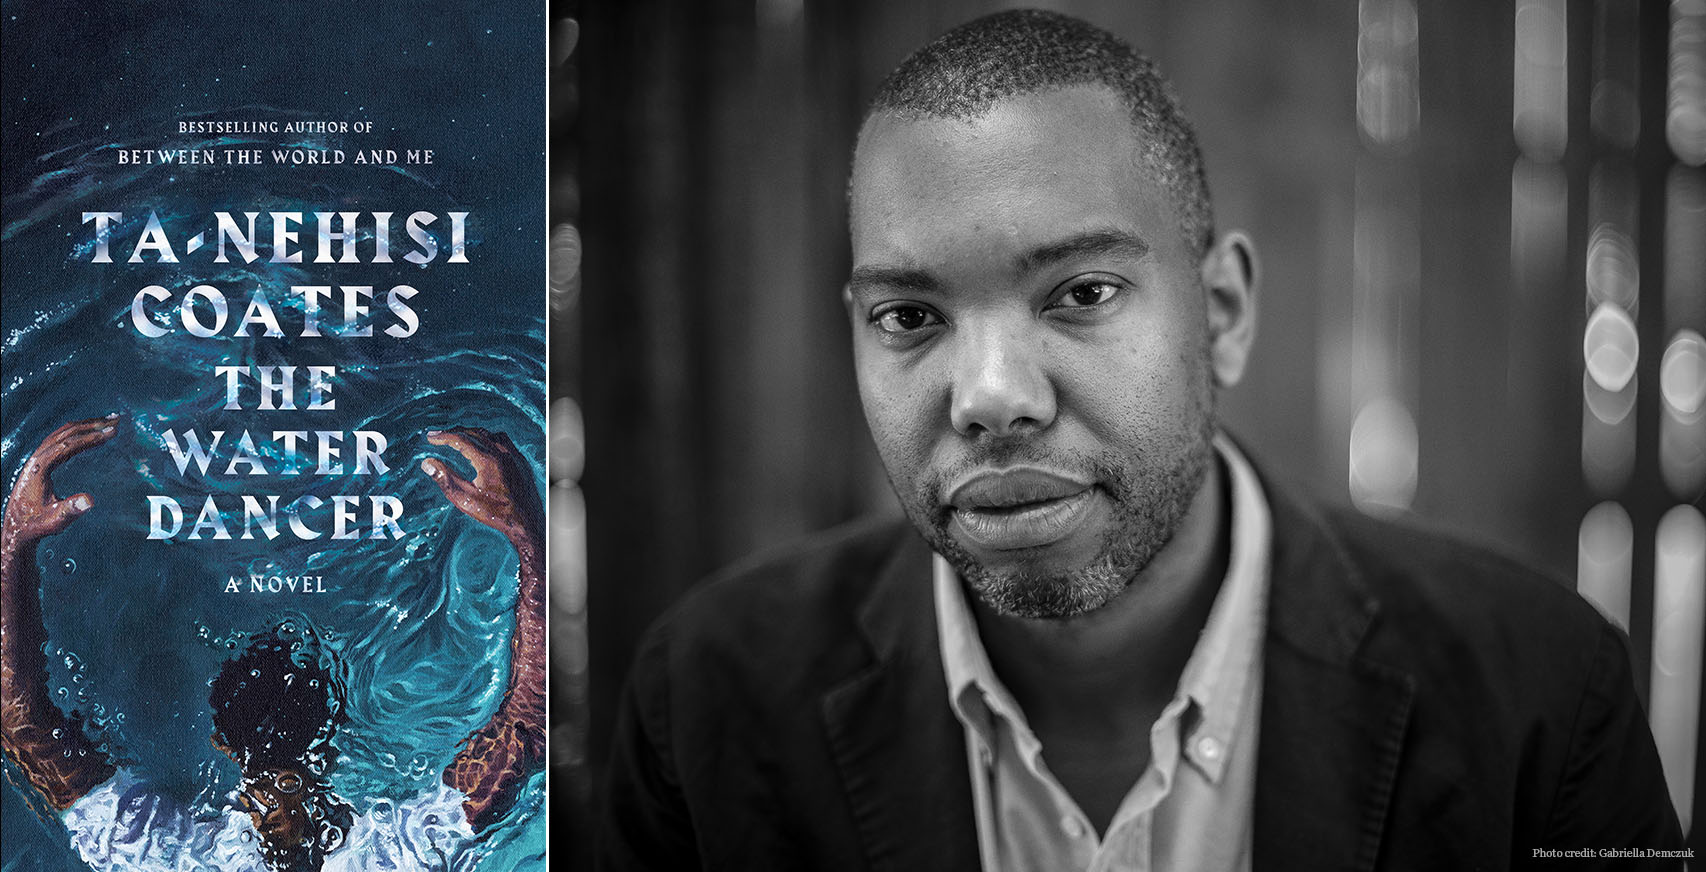 The Water Dancer by Ta-Nehisi Coates.  I've always loved Ta-Nehisi Coates' writing and lyricism, and I am enraptured by this narrative from the first sentence. As expected the story has many parallels with the present day of Black people in America.